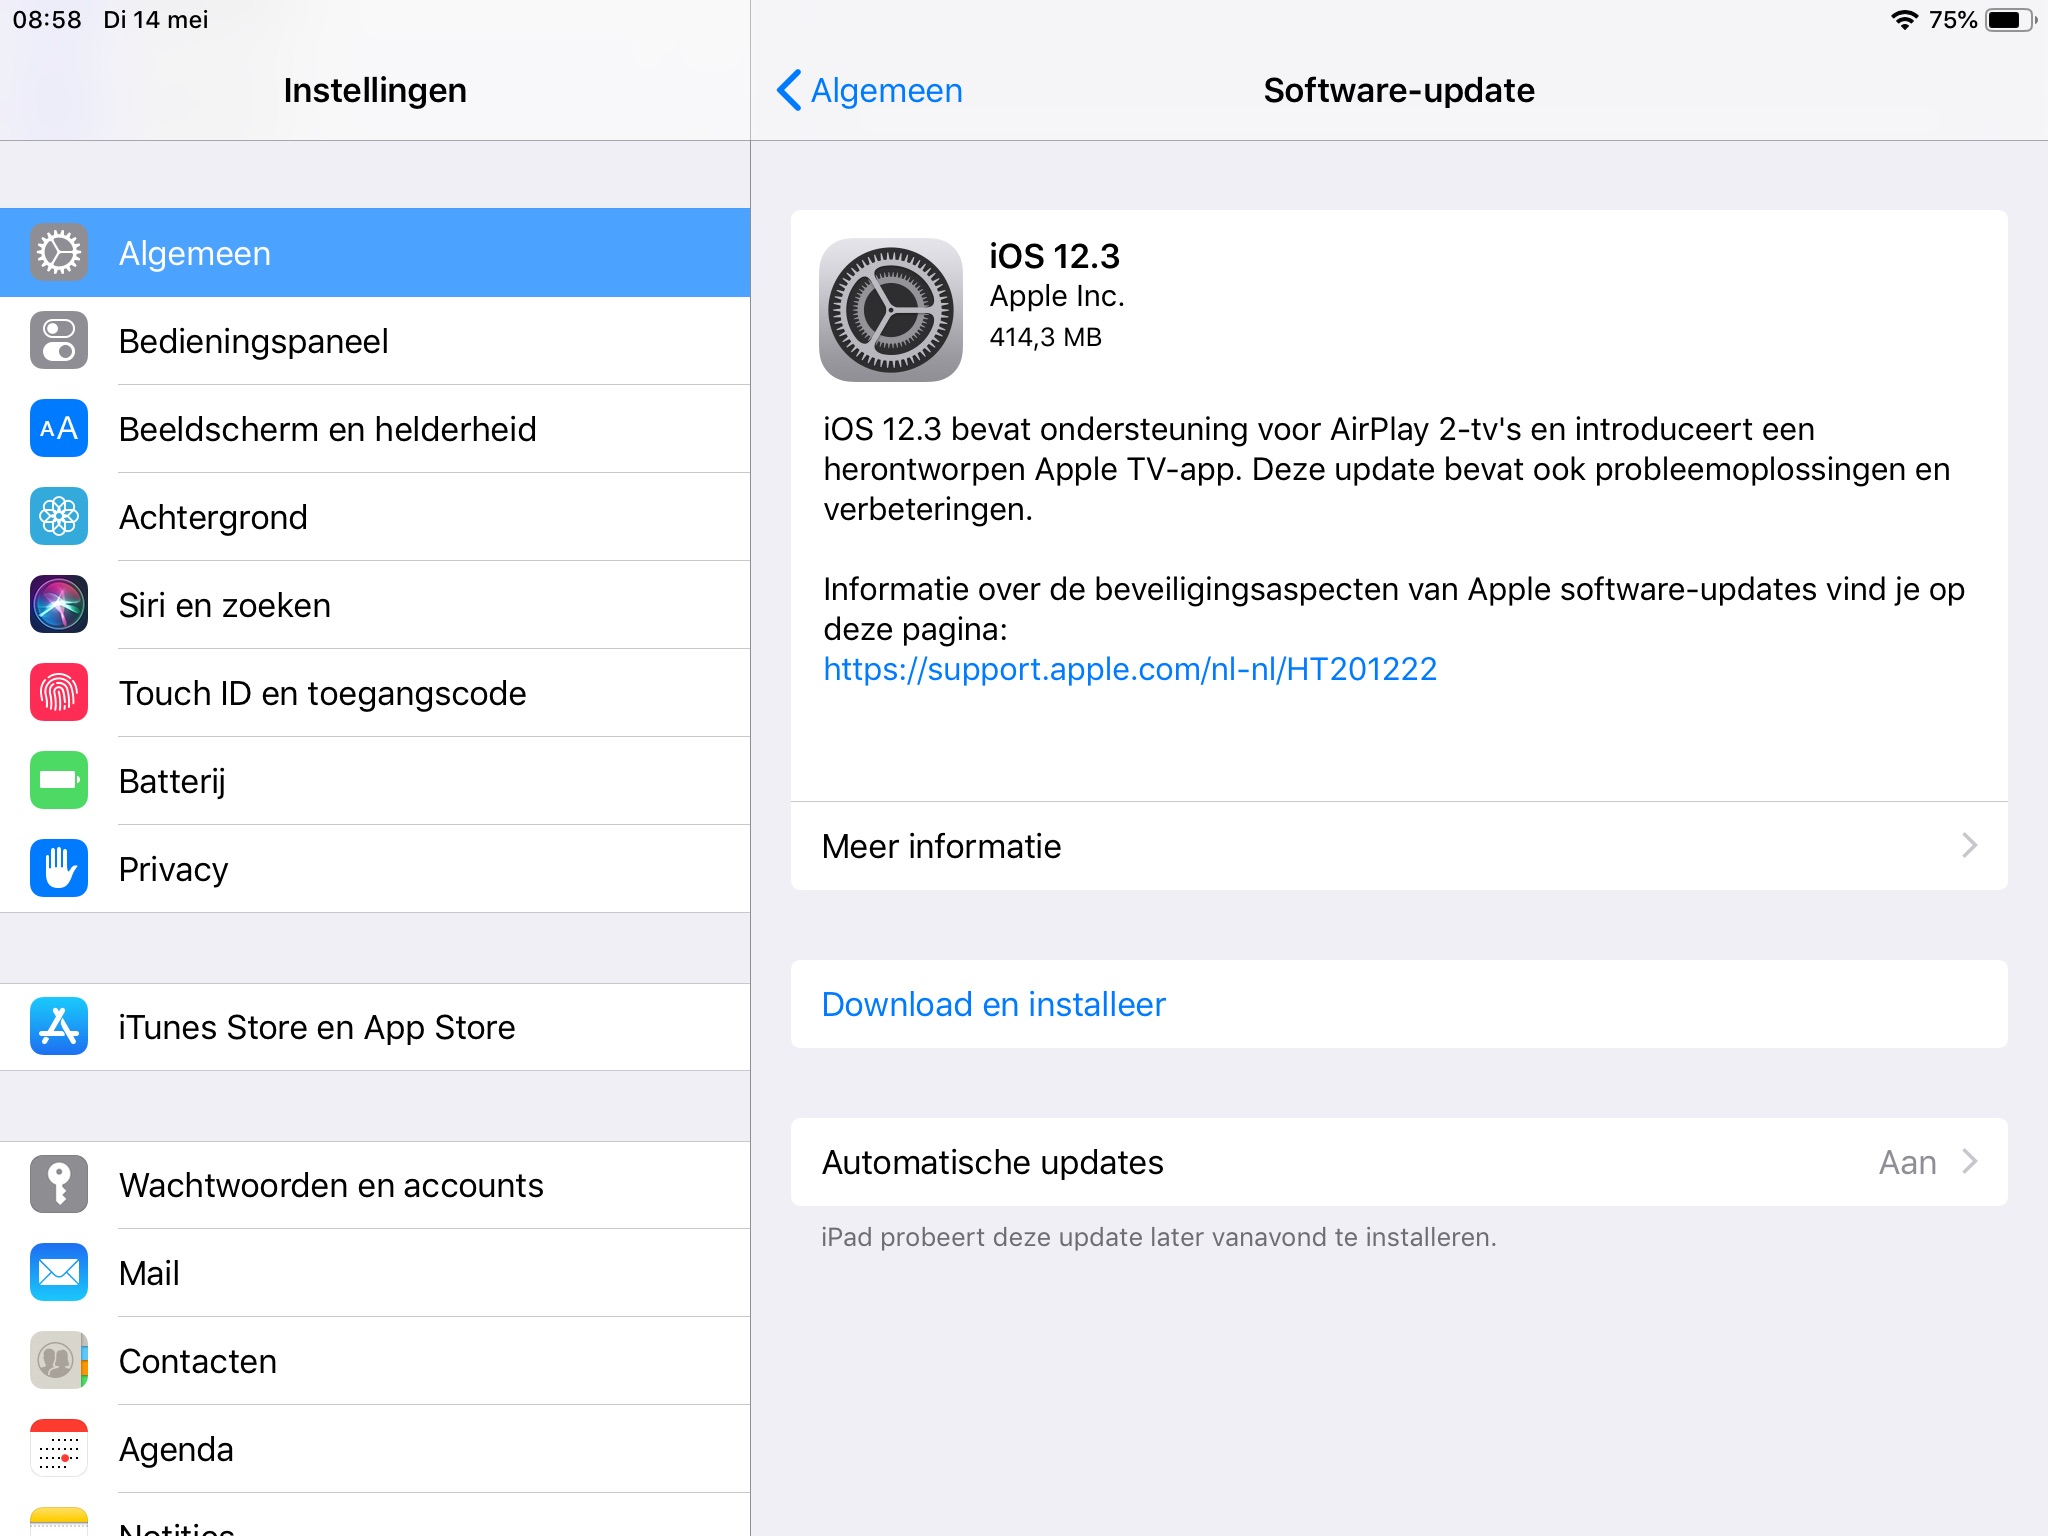 https://www.macfreak.nl/modules/news/images/zArt.iOS12.3Update.jpg